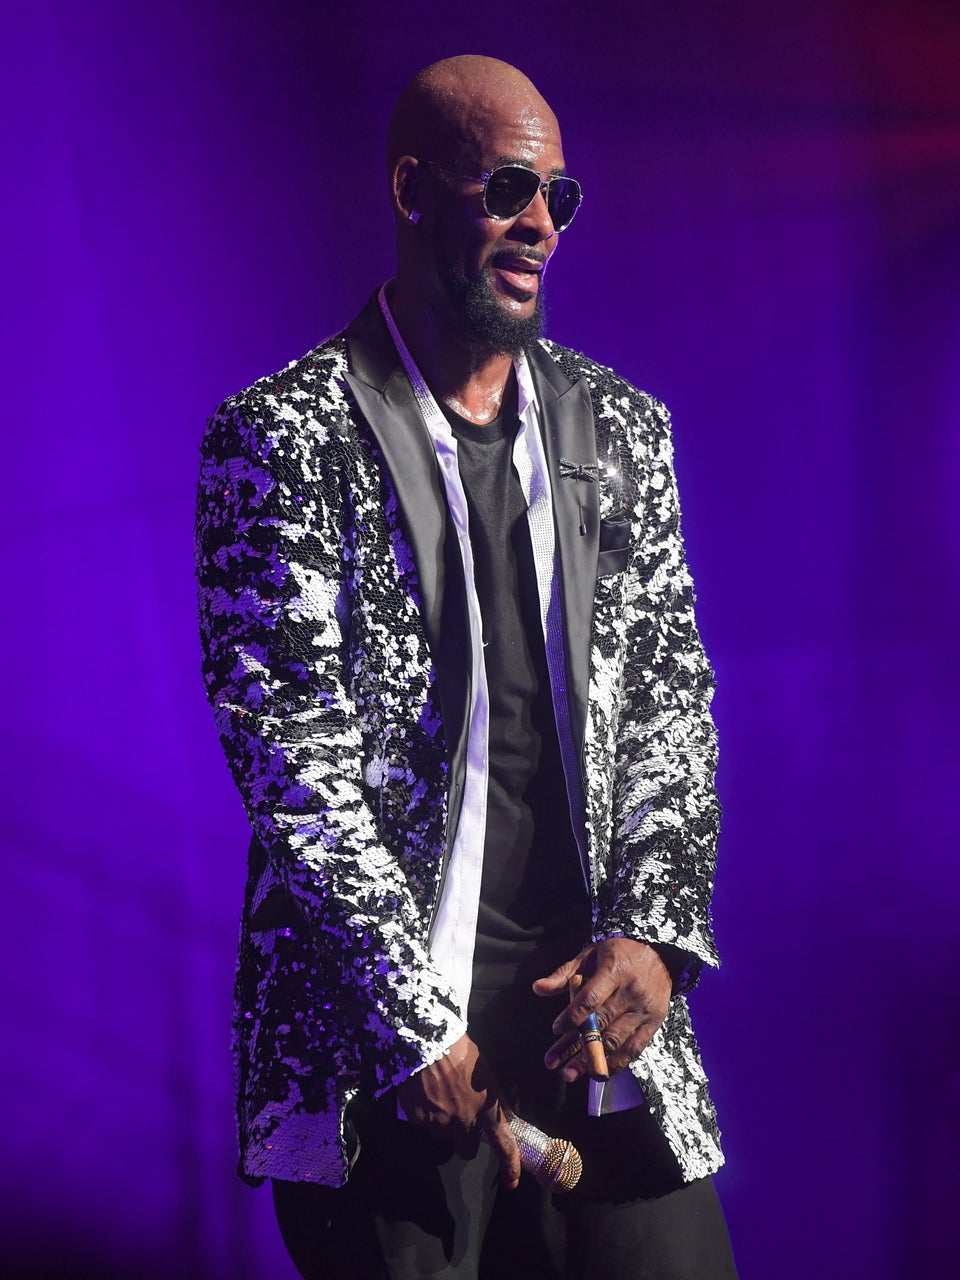 Mississippi Man Suing R. Kelly For Allegedly Having A 5-Year Affair With His Wife